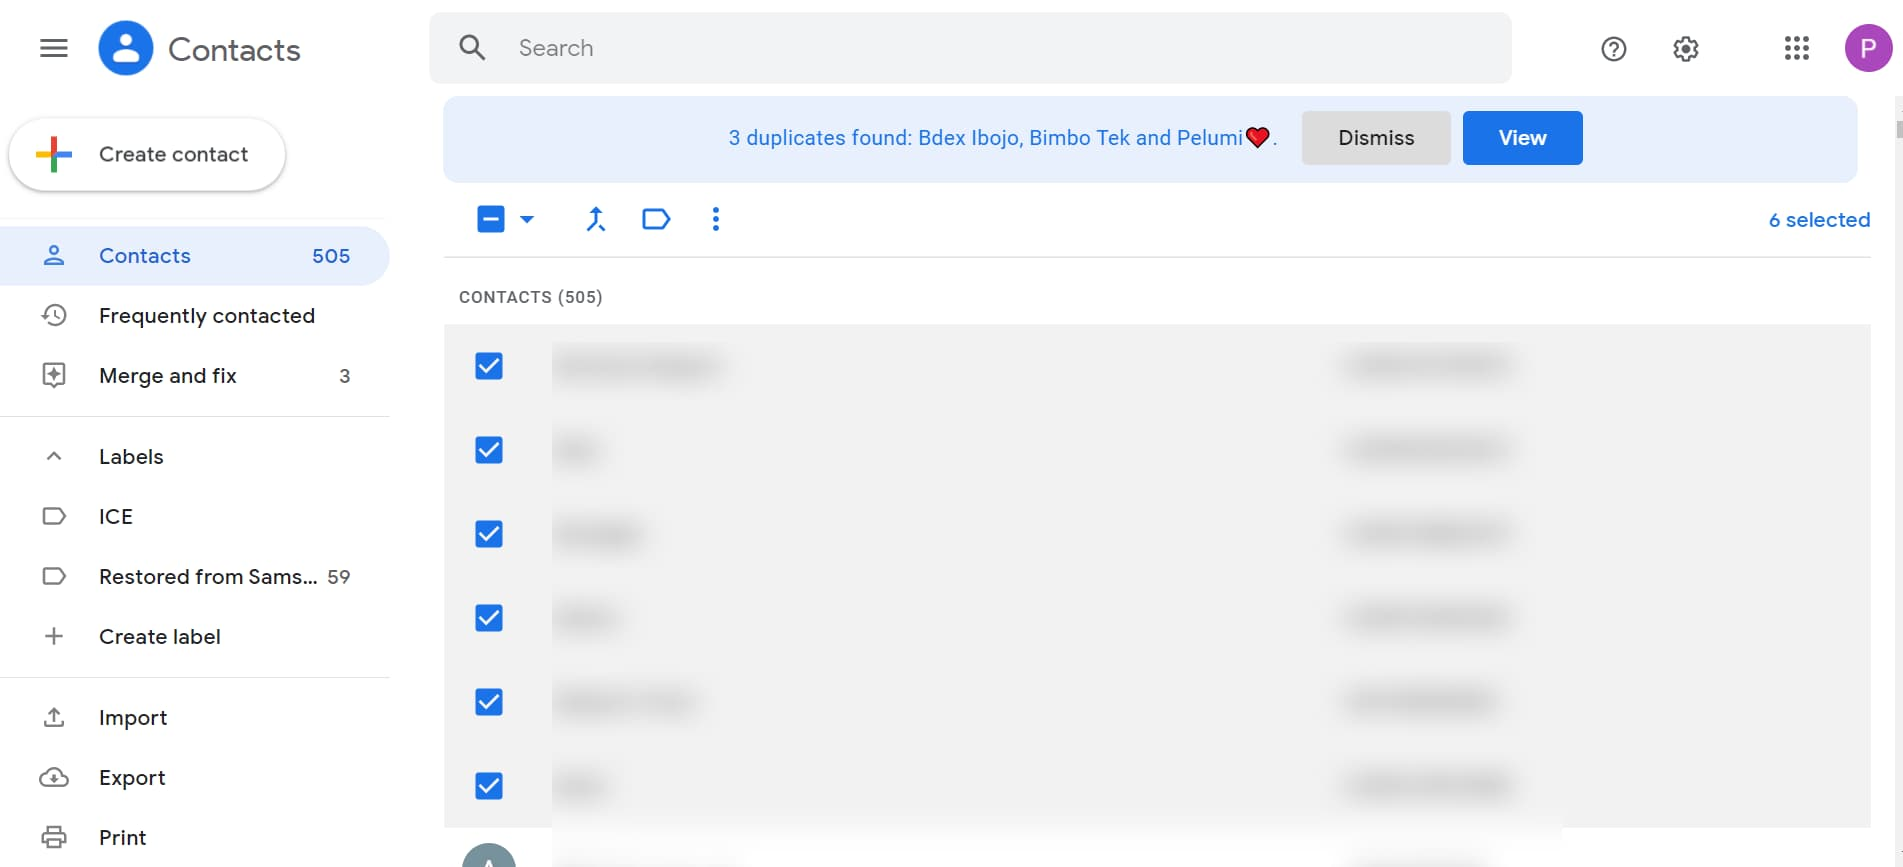 how to create an email group in Gmail: check the boxes